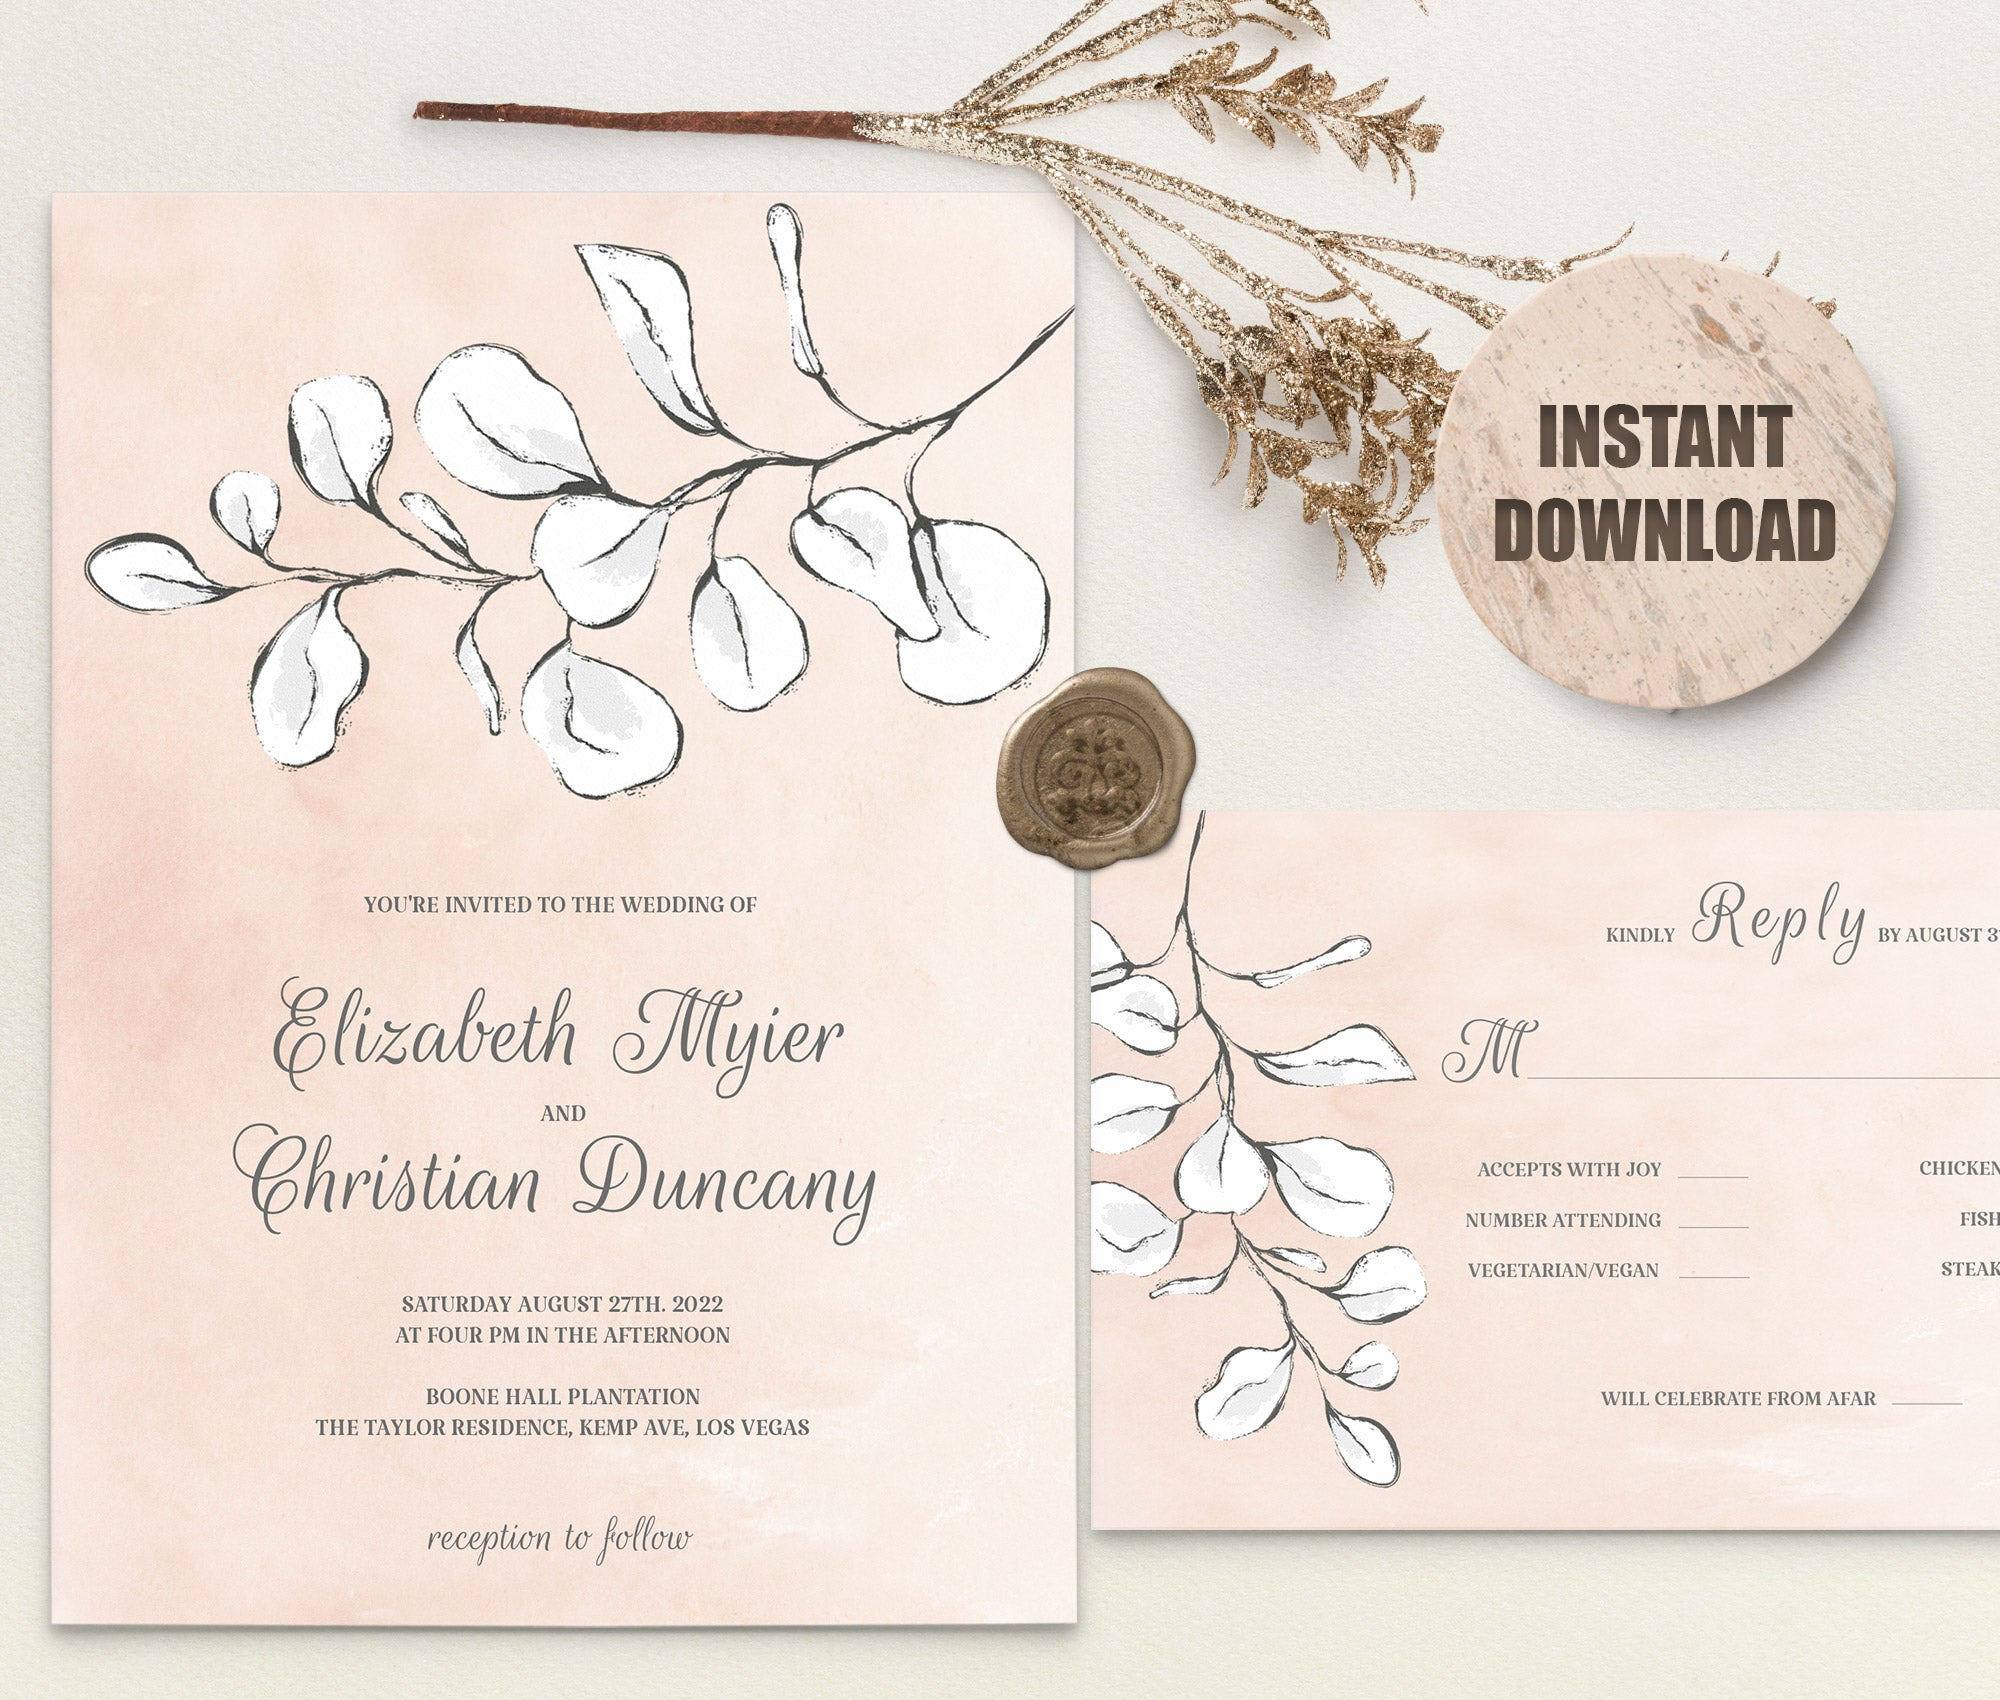 REMA Wedding Invitation and RSVP set